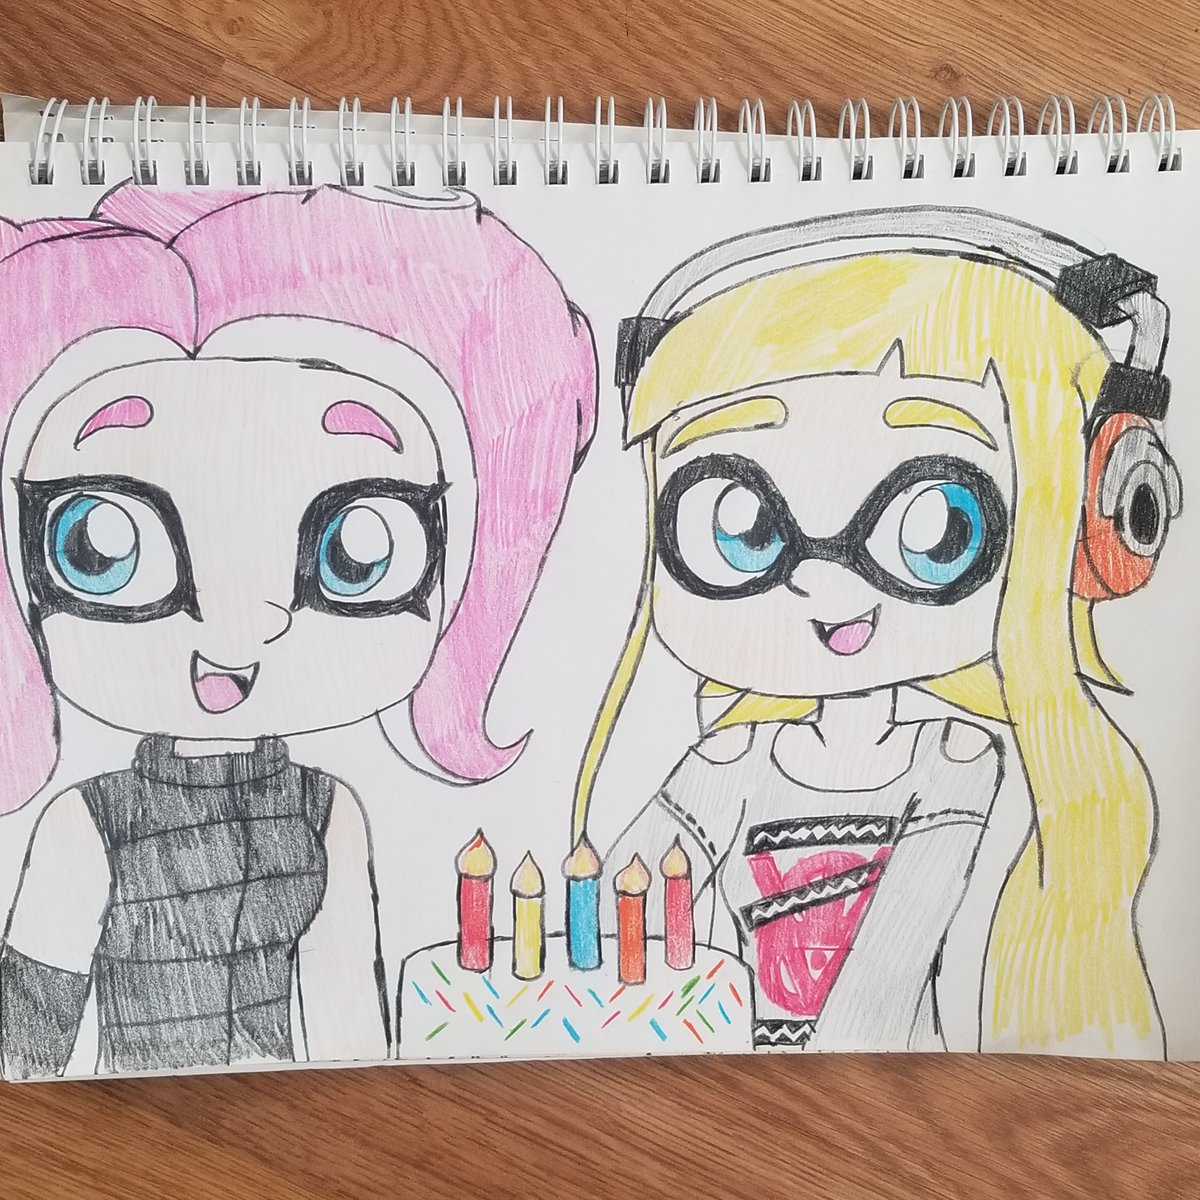 Happy birthday to my very great friend, Joseph Day (@Scamper52596)! 😃🎂 Here is a new b-day gift drawing I made of both of his OCs, Cephanie and Shellsea and I really hope you like it. 🙂